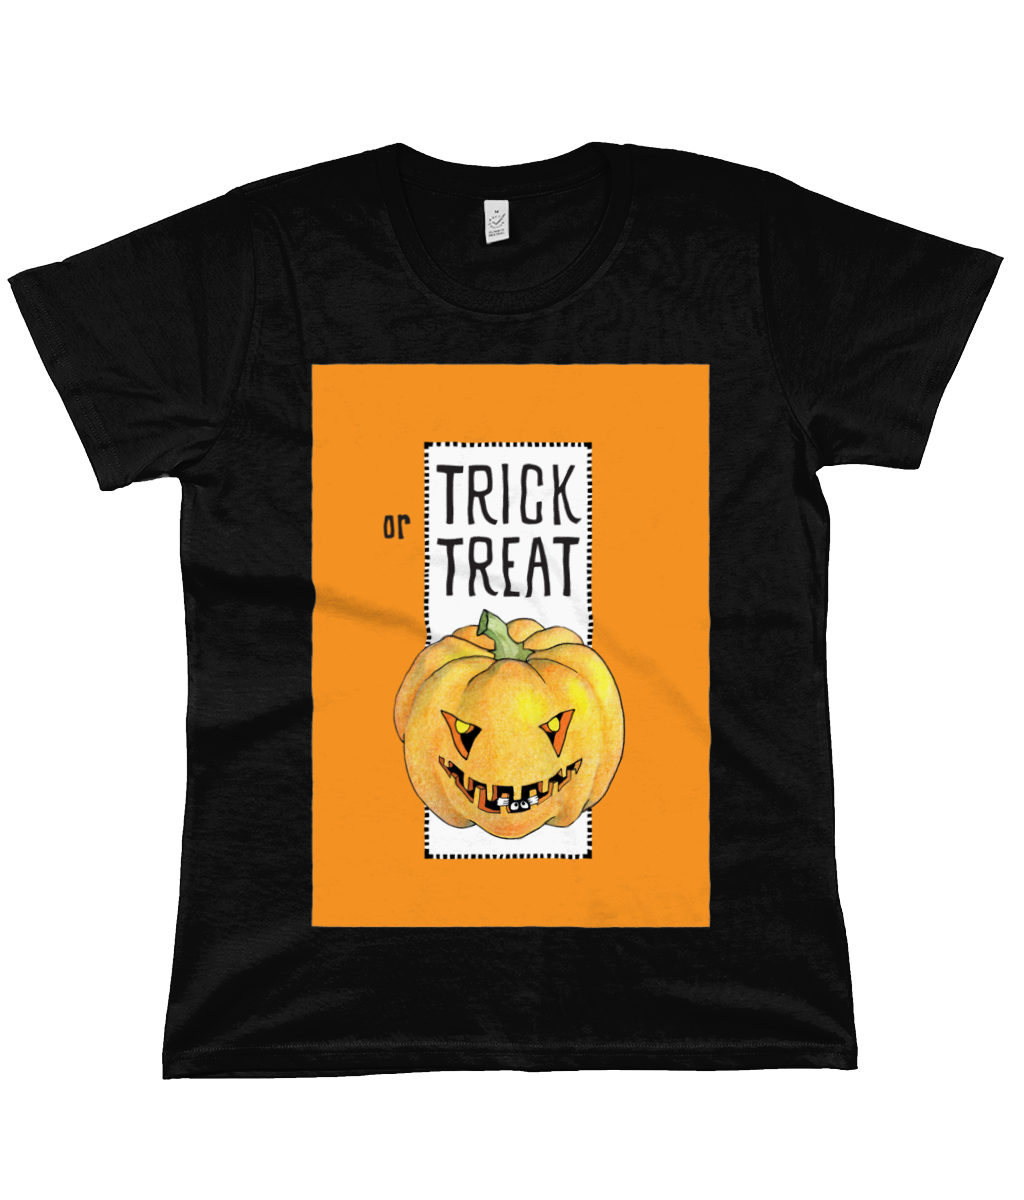 Trick or Treat Pumpkin Halloween Organic Classic Jersey T-Shirt